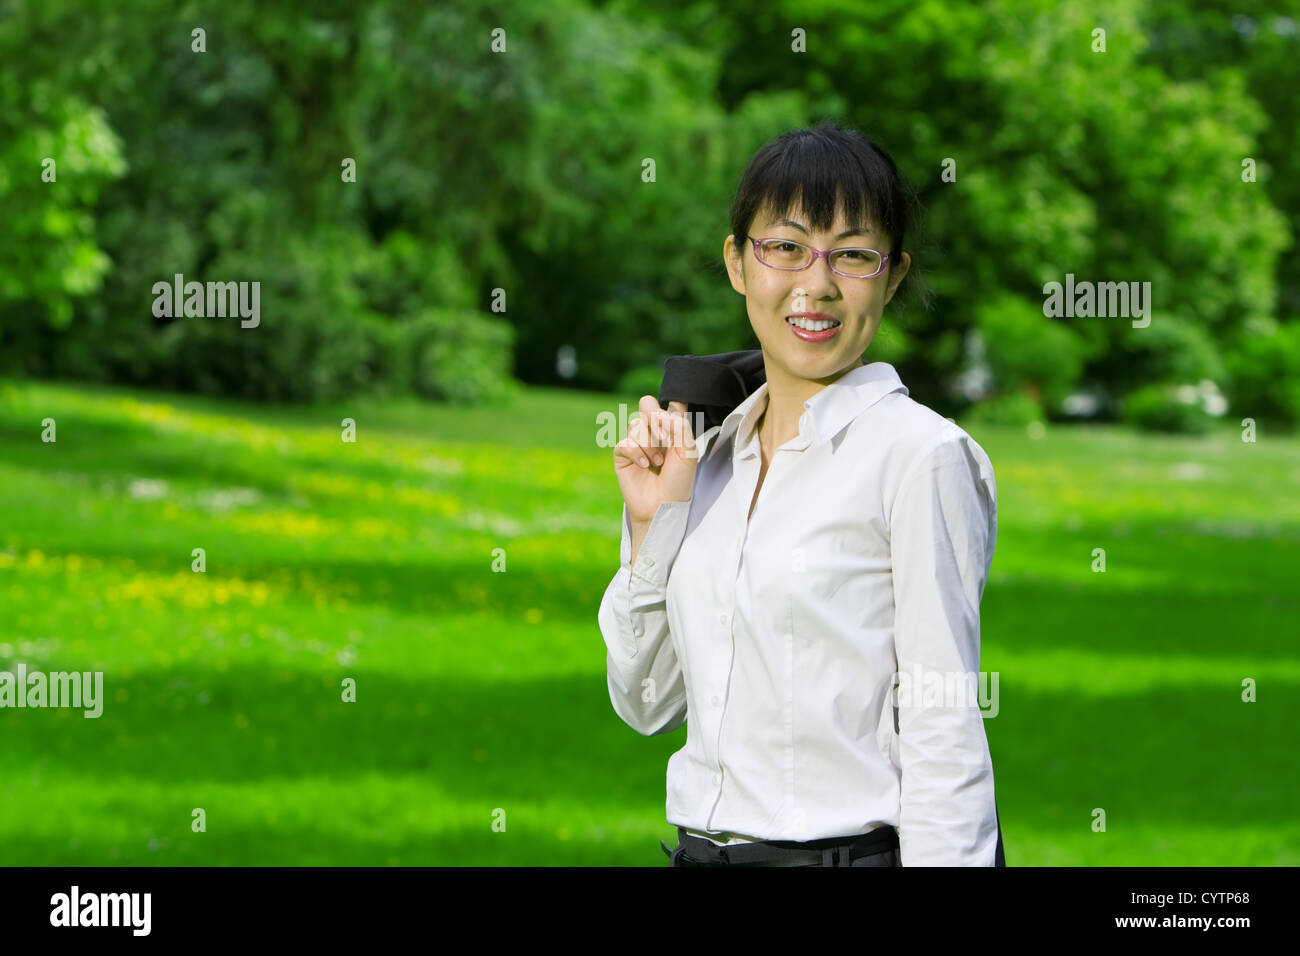 Environmentally friendly asian business woman outdoors in nature with green grass - Stock Image